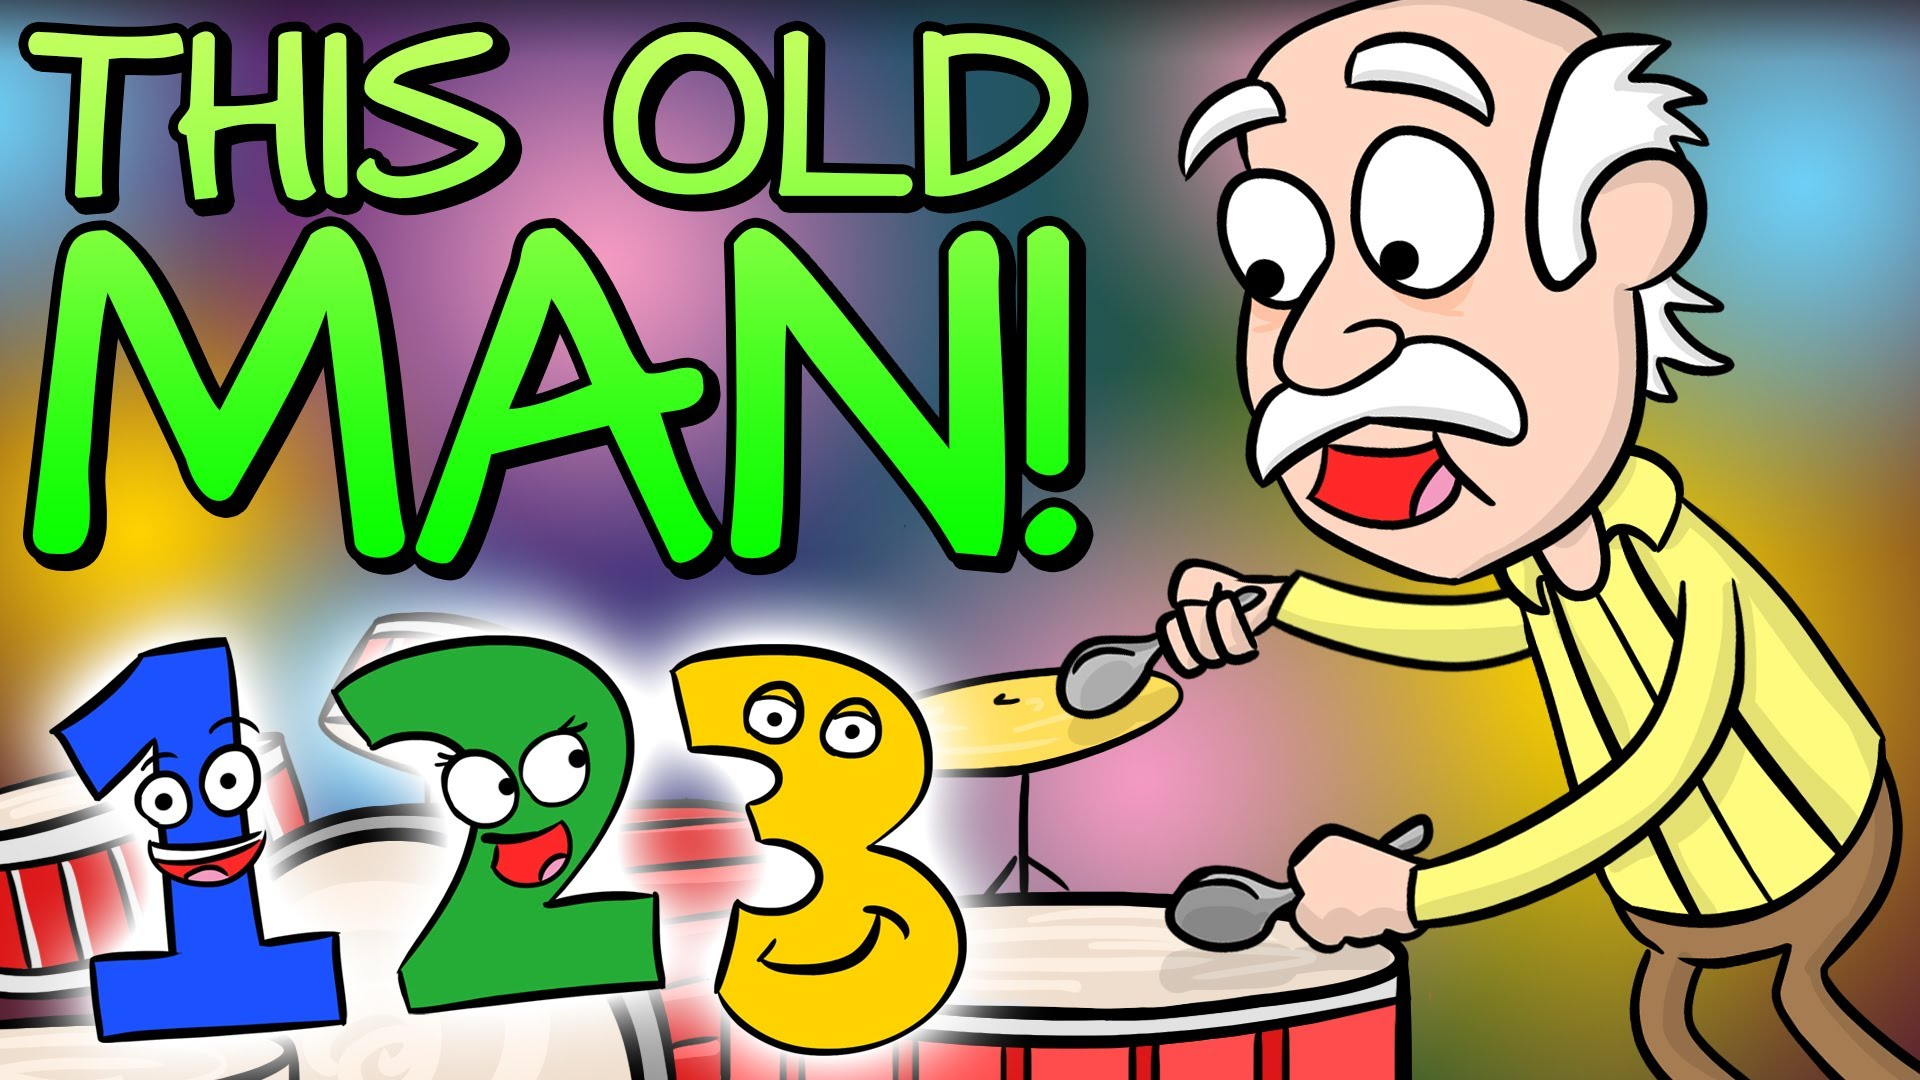 Awesome clipart cool math. This old man behind